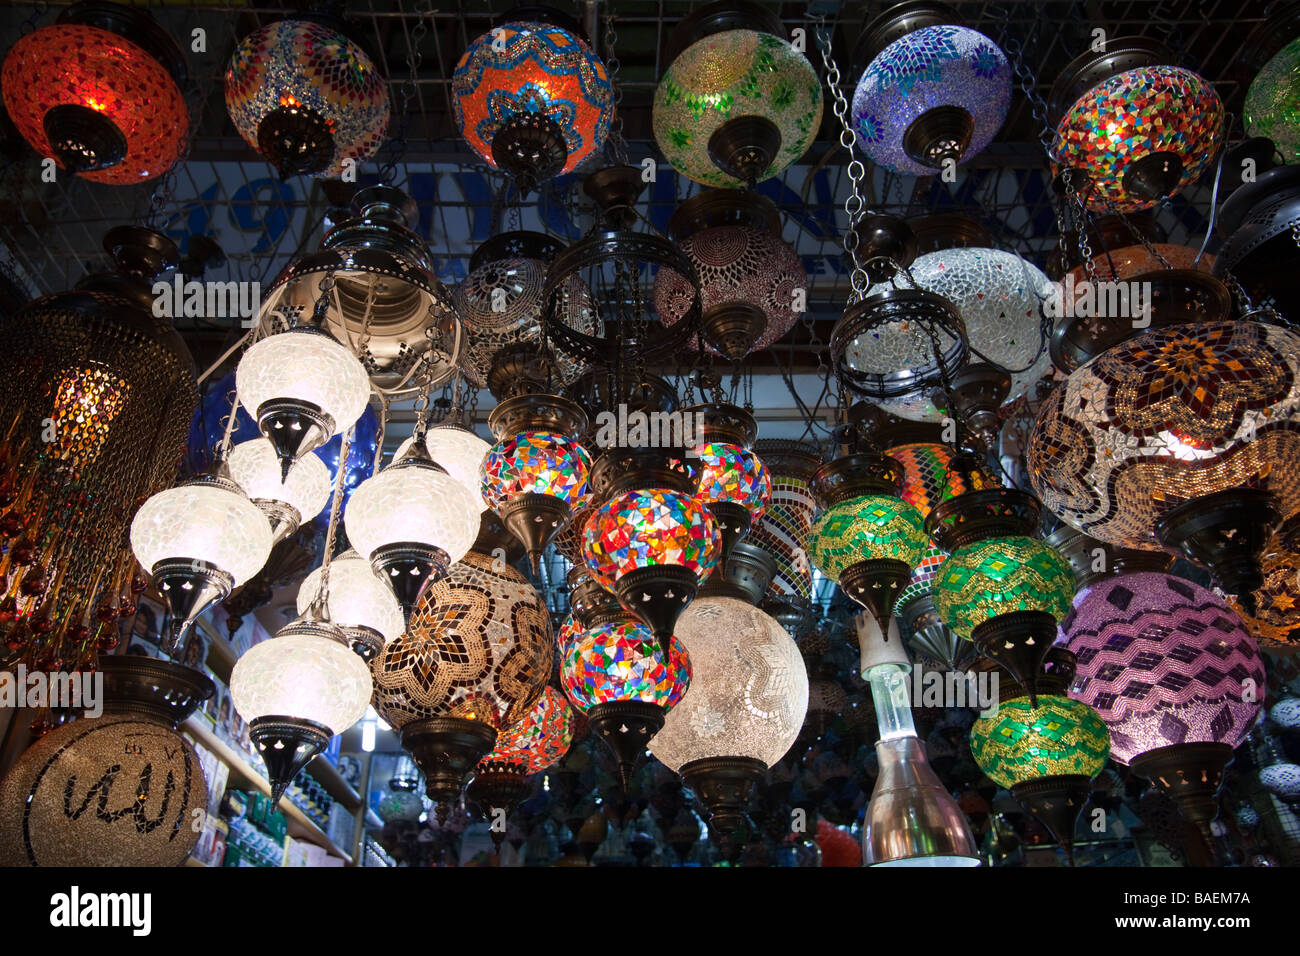 Colorful lamps for sale at a Bazaar in Istanbul Turkey - Stock Image